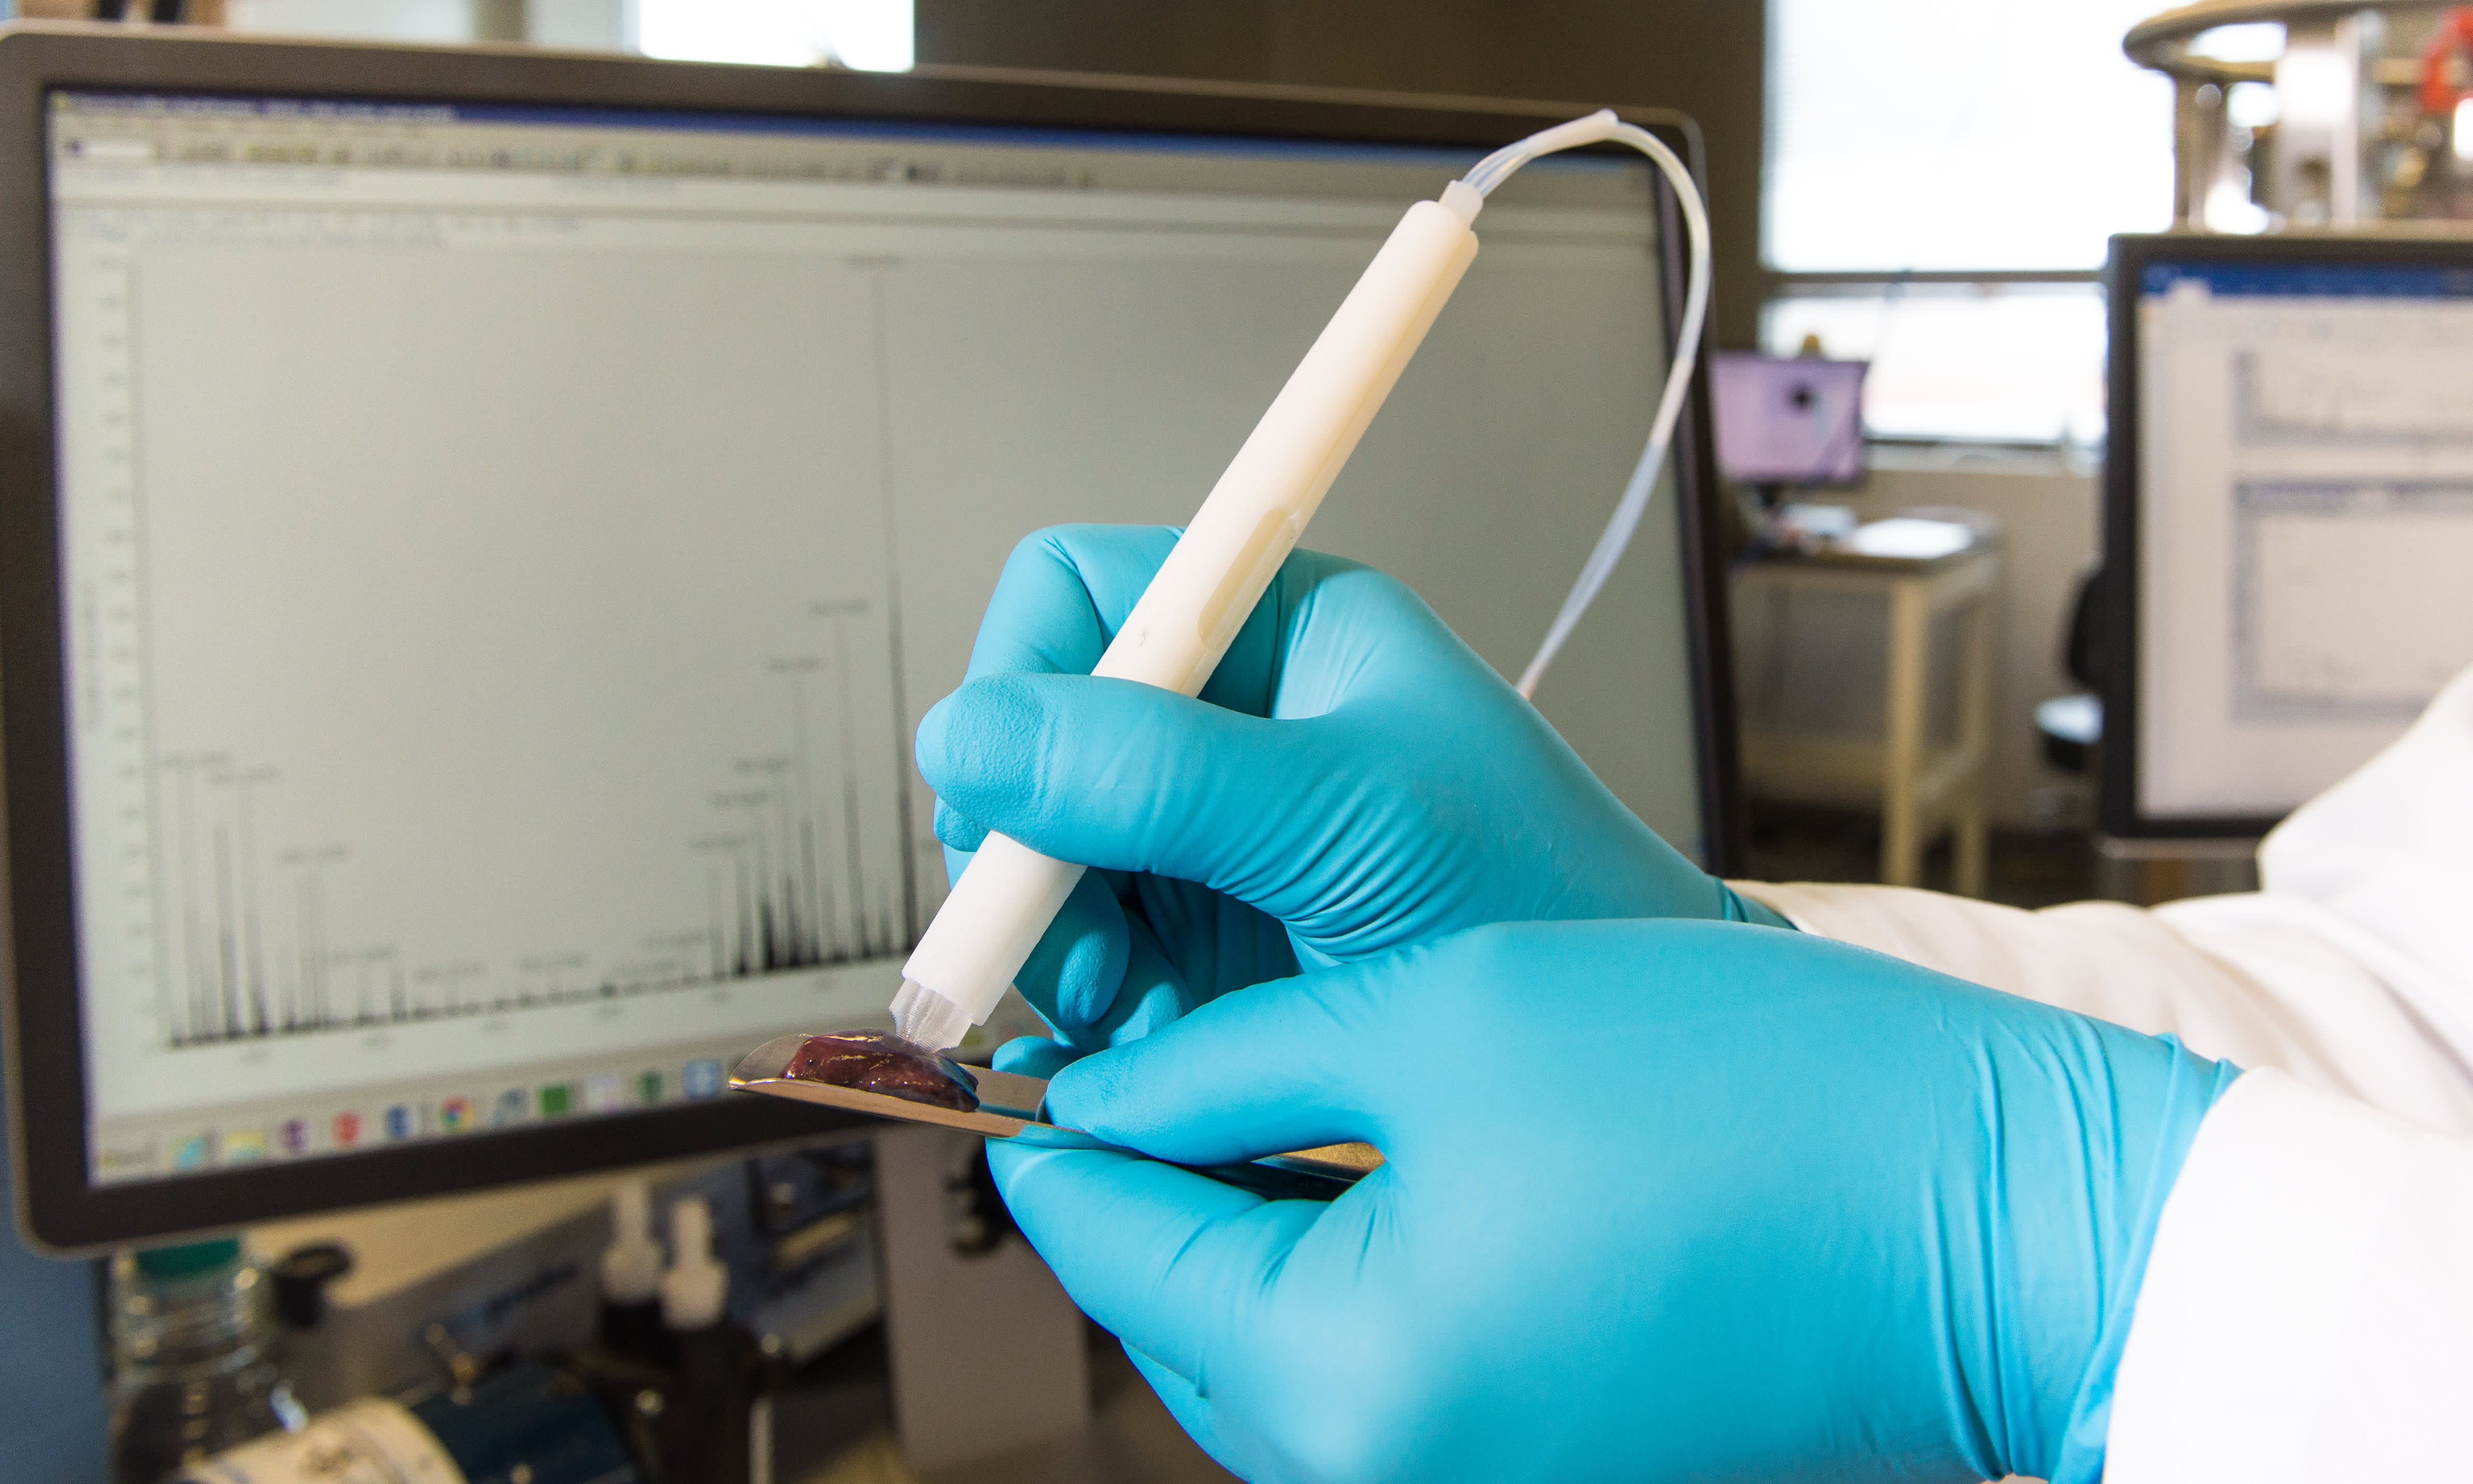 This pen will let surgeons detect cancer in seconds